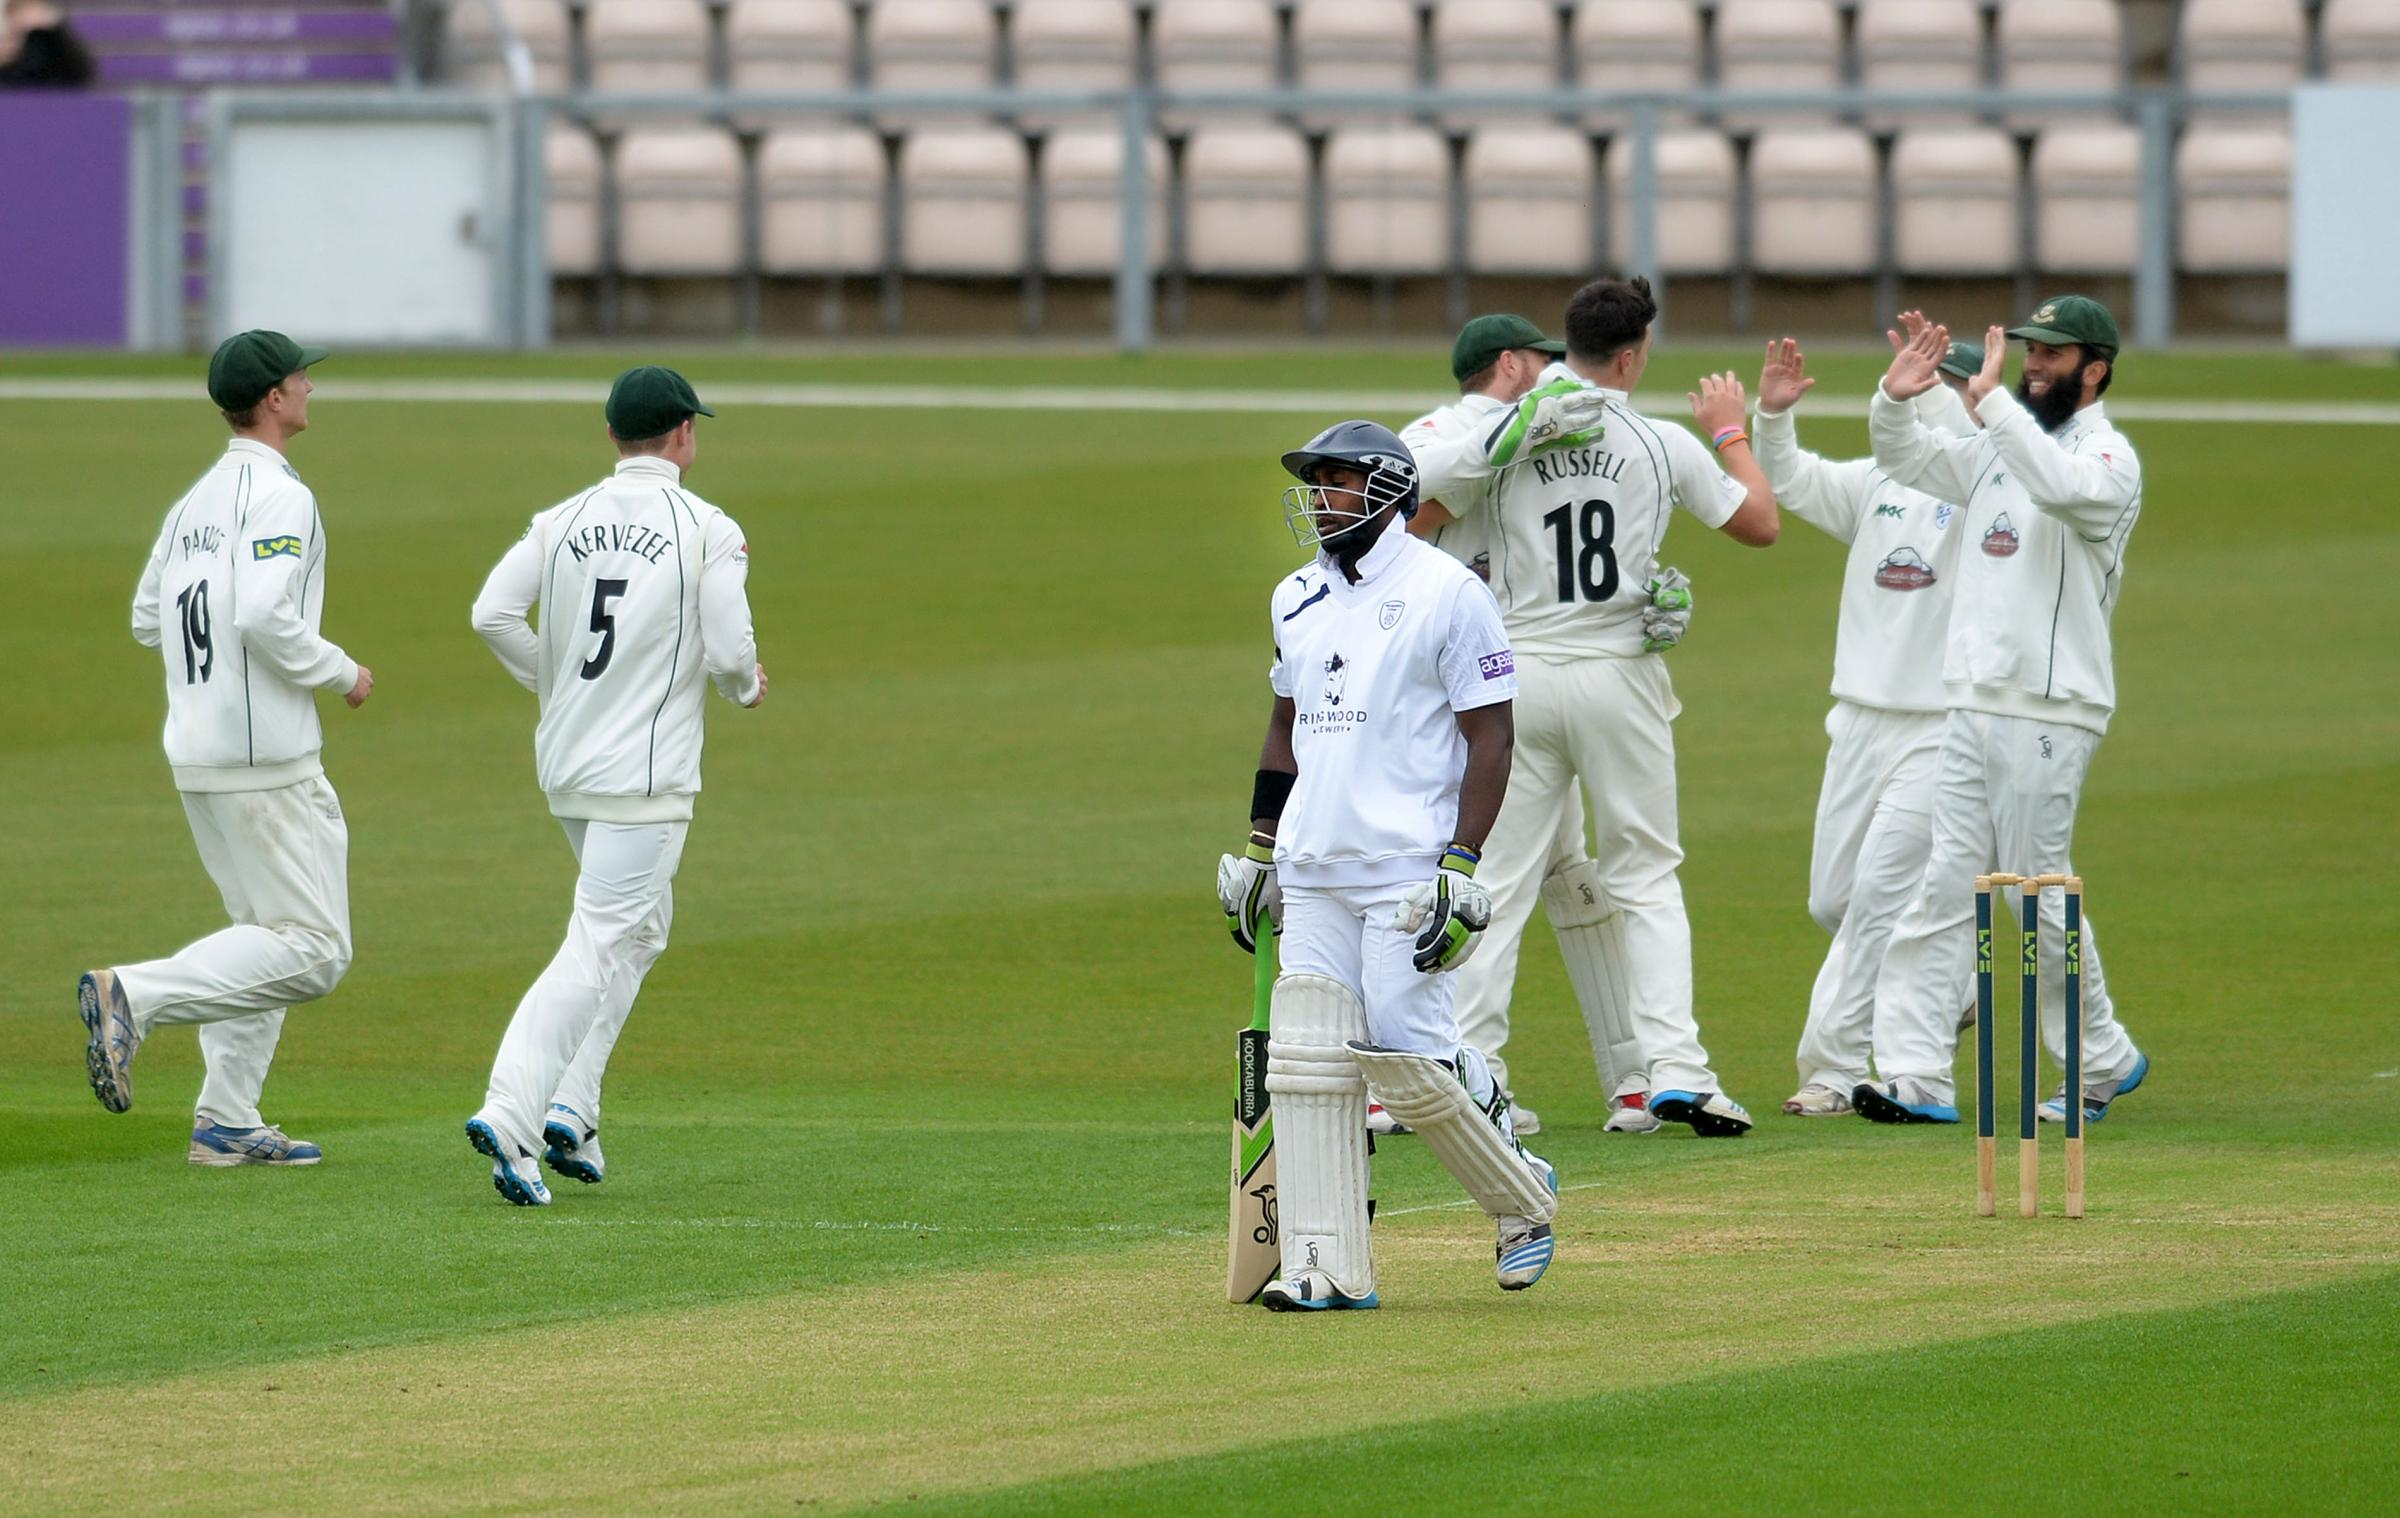 Worcestershire celebrate the dismissal of Michael Carberry (Pic: Robin Jones)